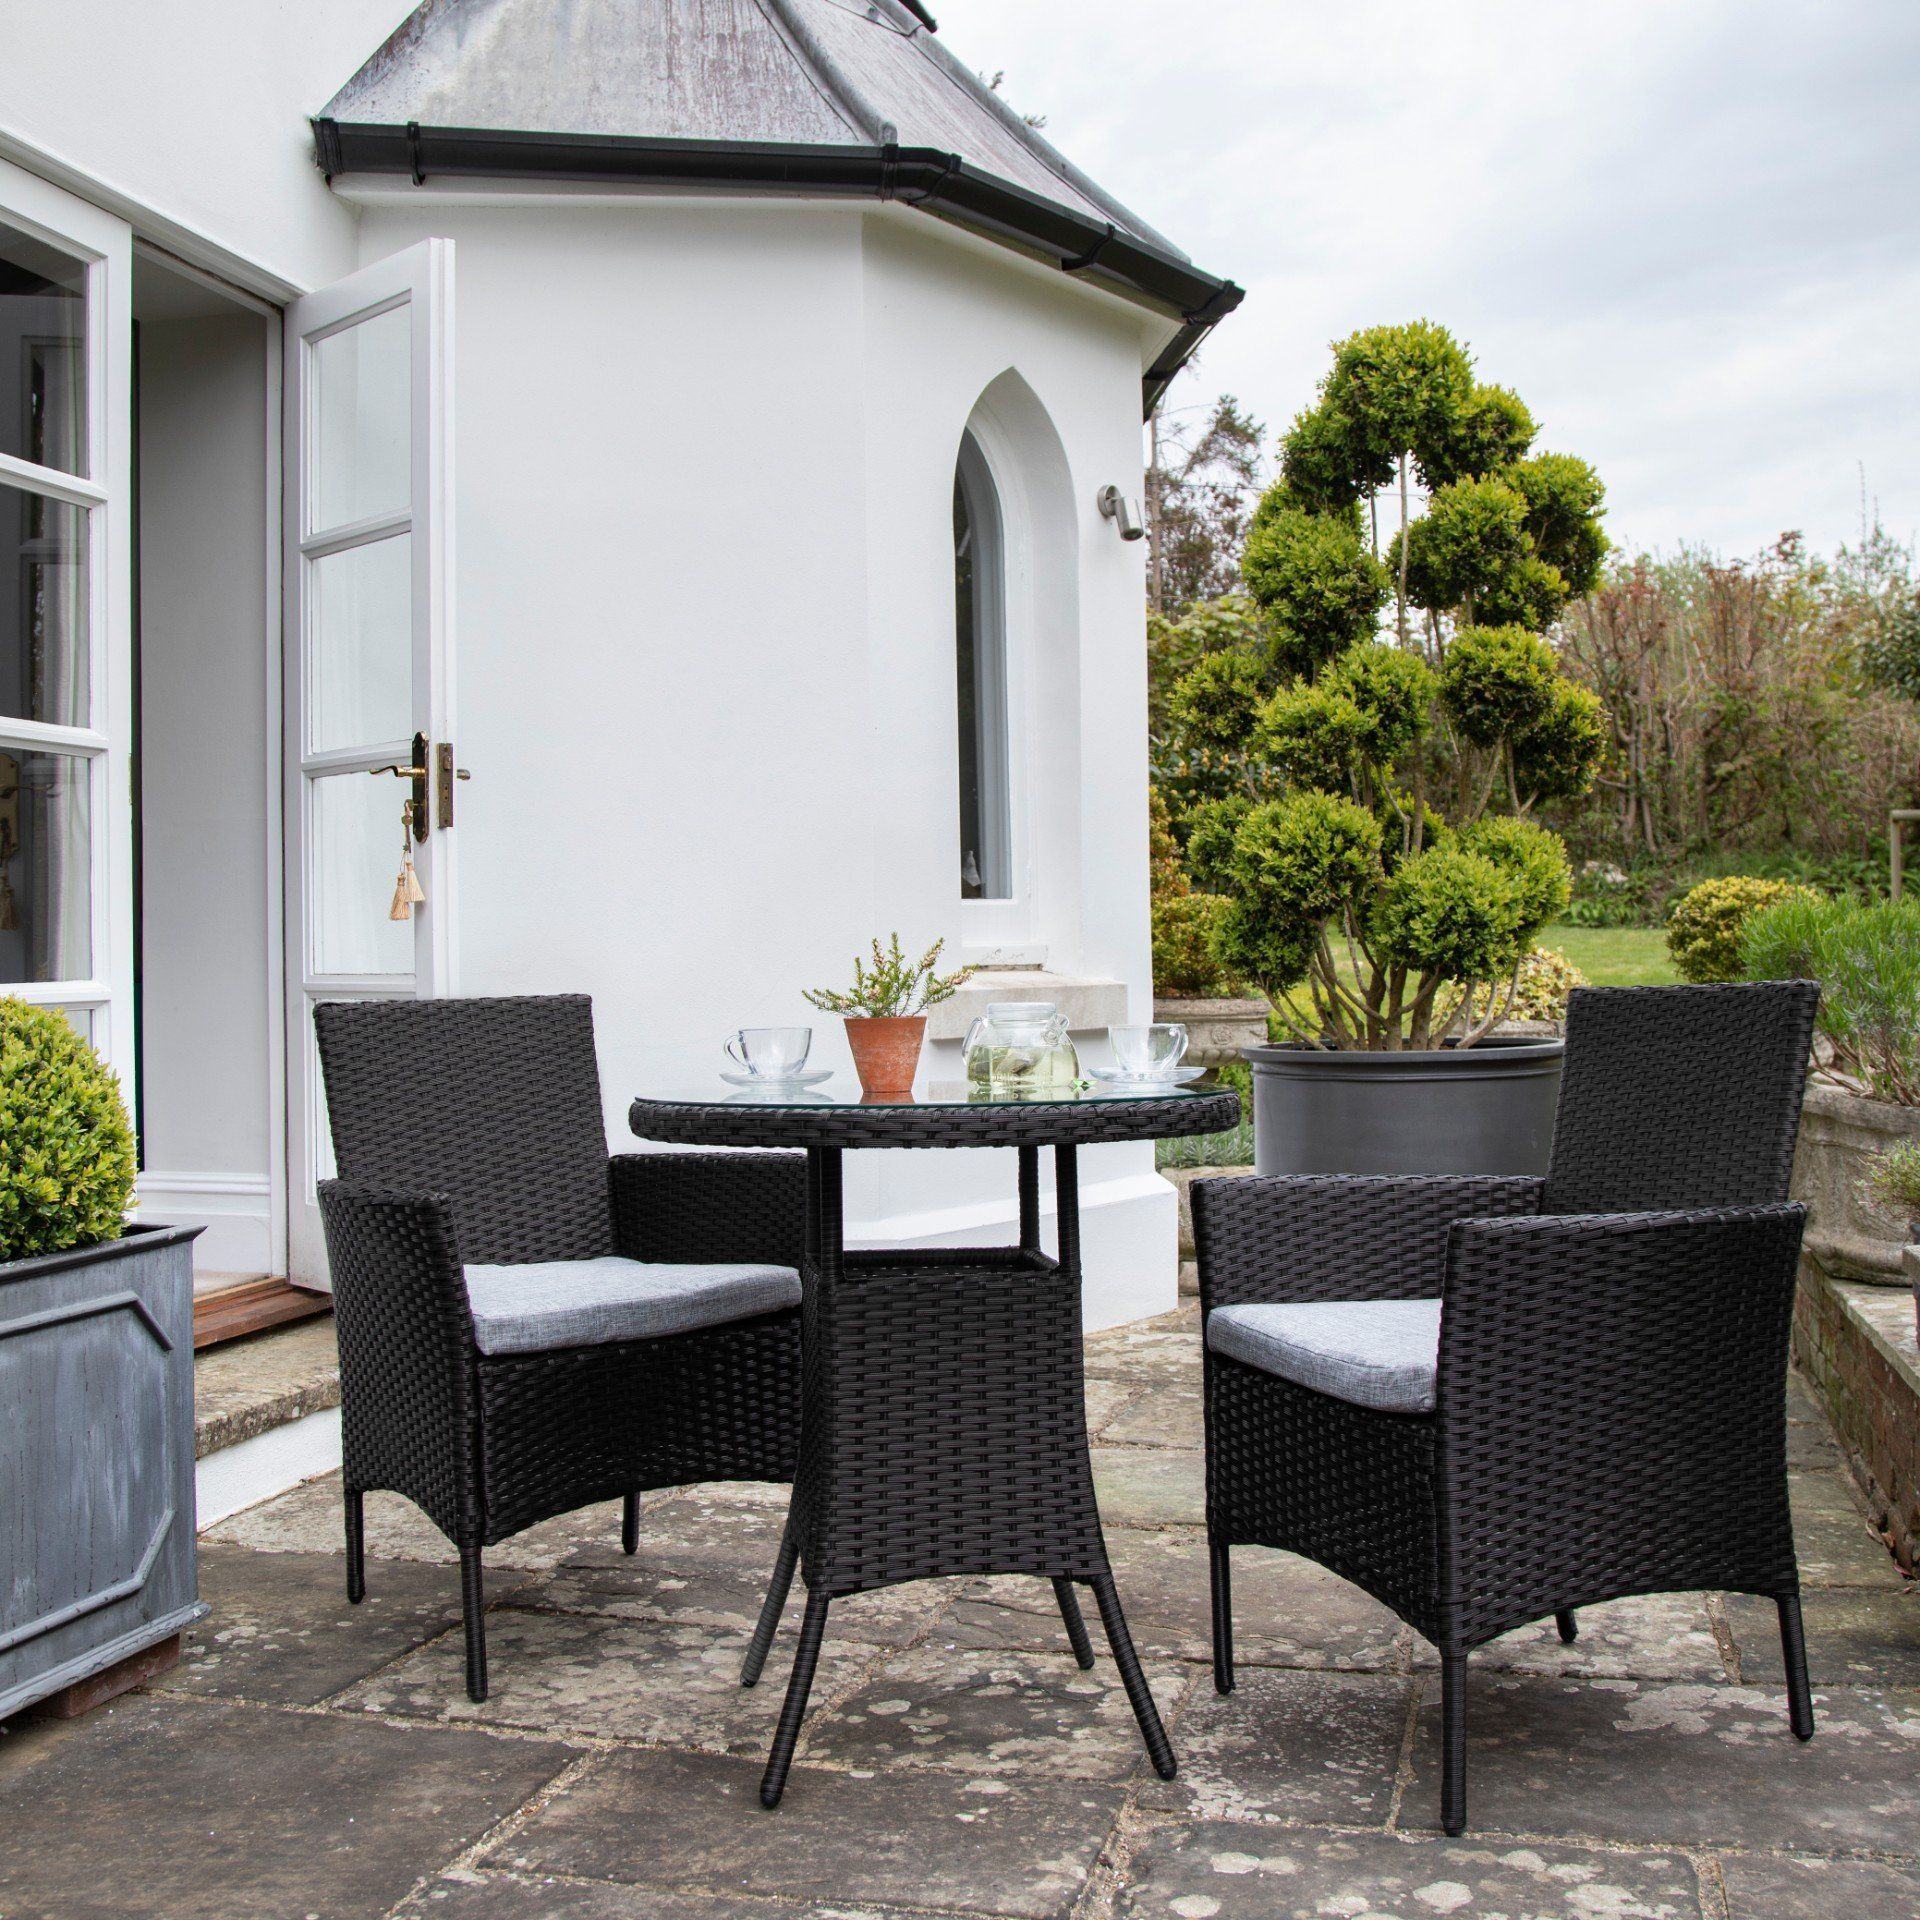 2 Seater Rattan Bistro Dining Set in Black - Garden Furniture - Laura James